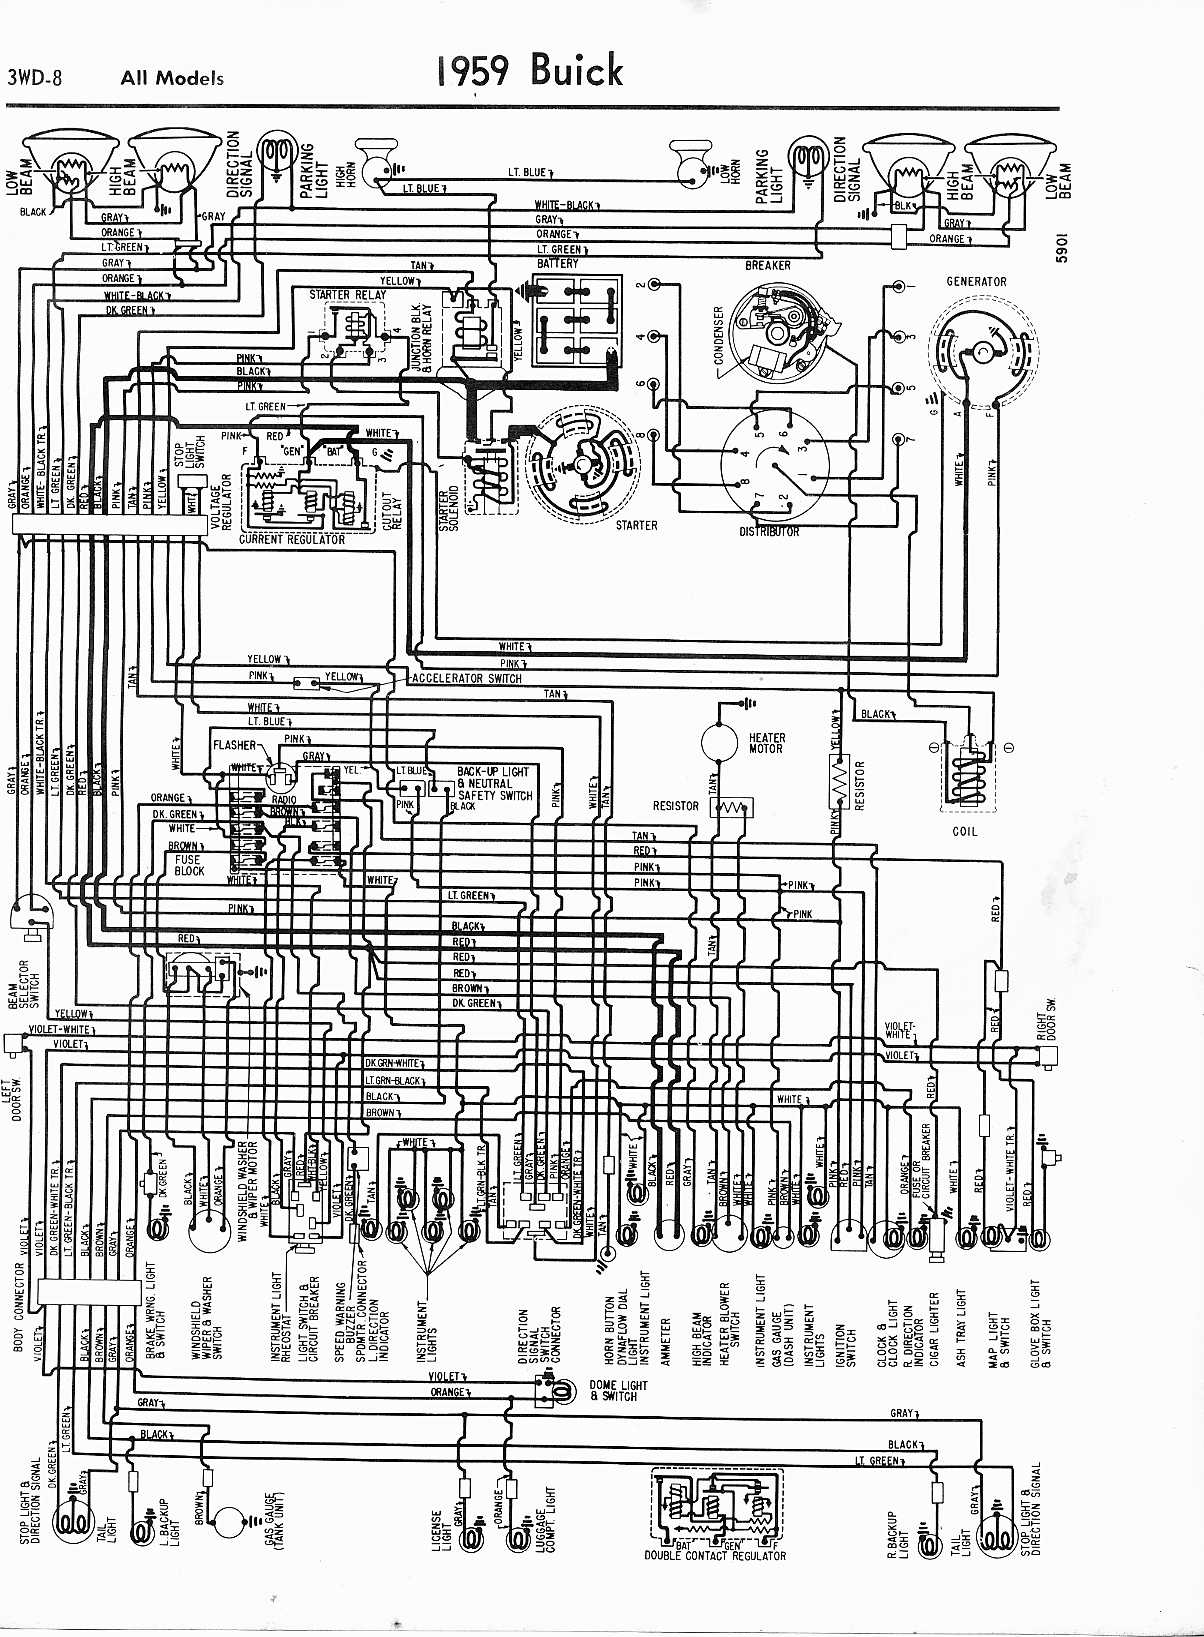 1960 buick wiring diagram wiring diagram ops 1960 buick invicta wiring diagram 1960 buick wiring diagram #2